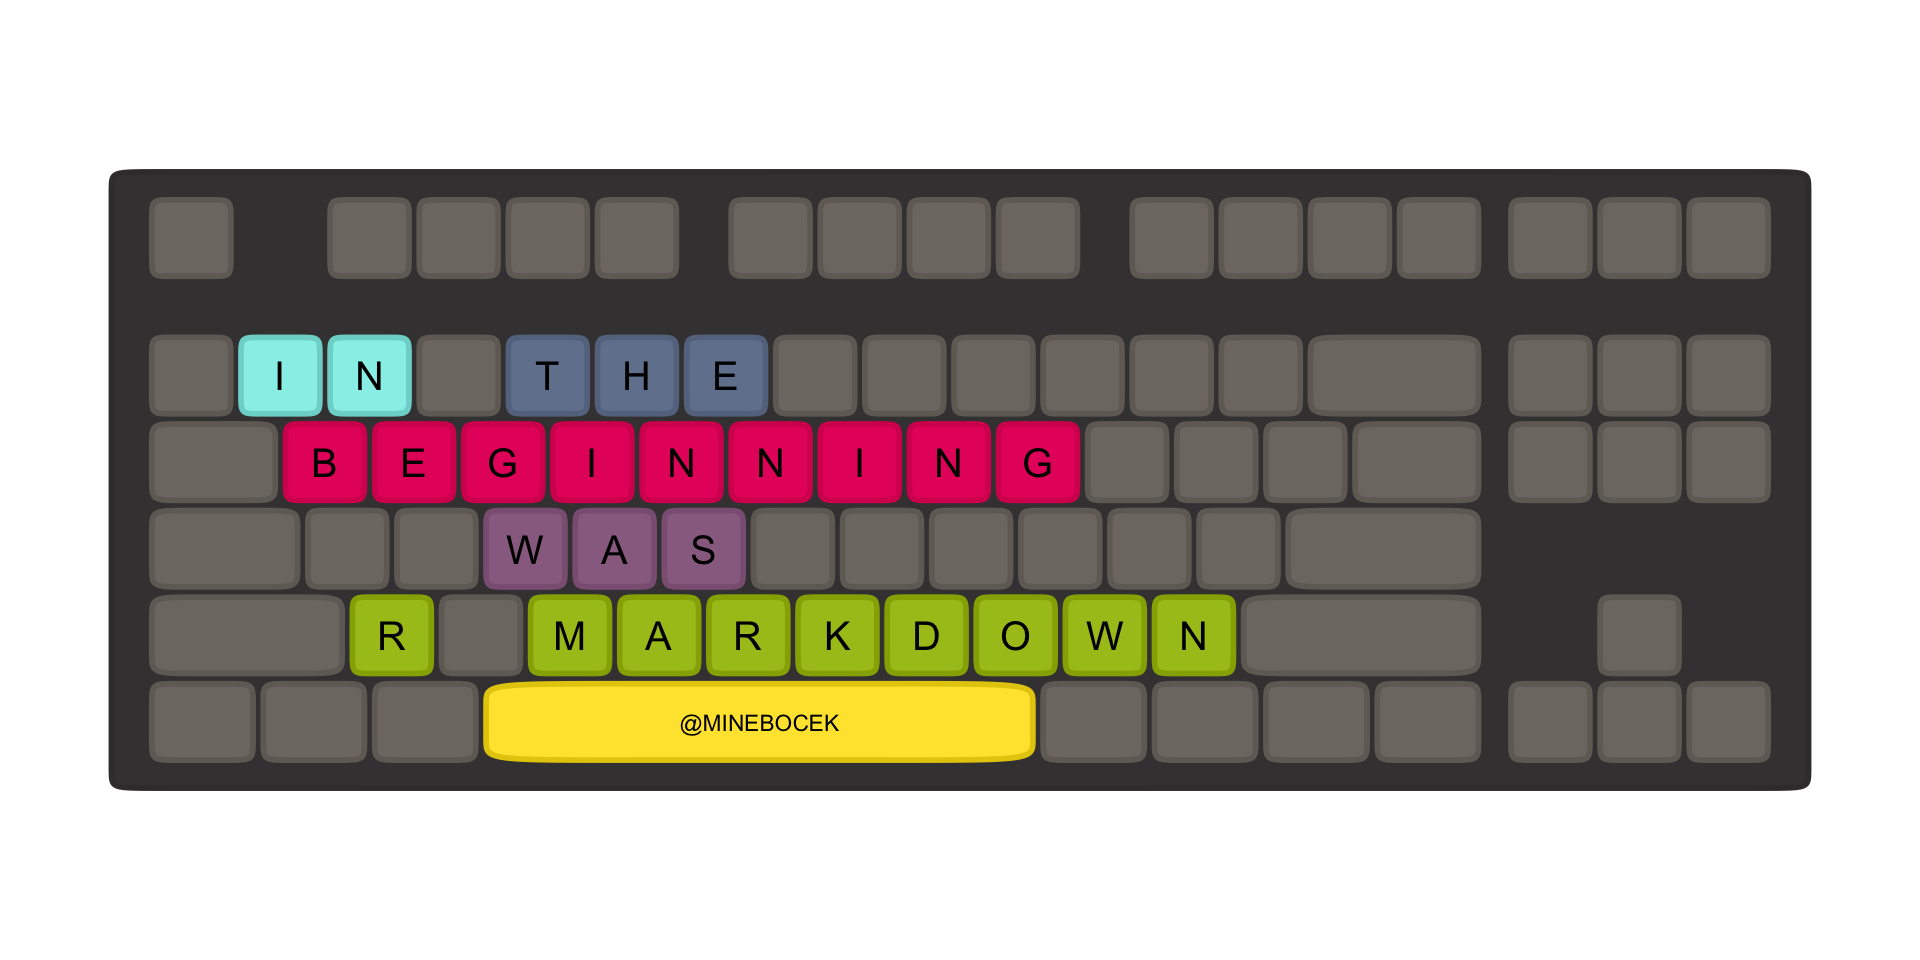 Keyboard that spells out 'In the beginning was R Markdown' in the keys.